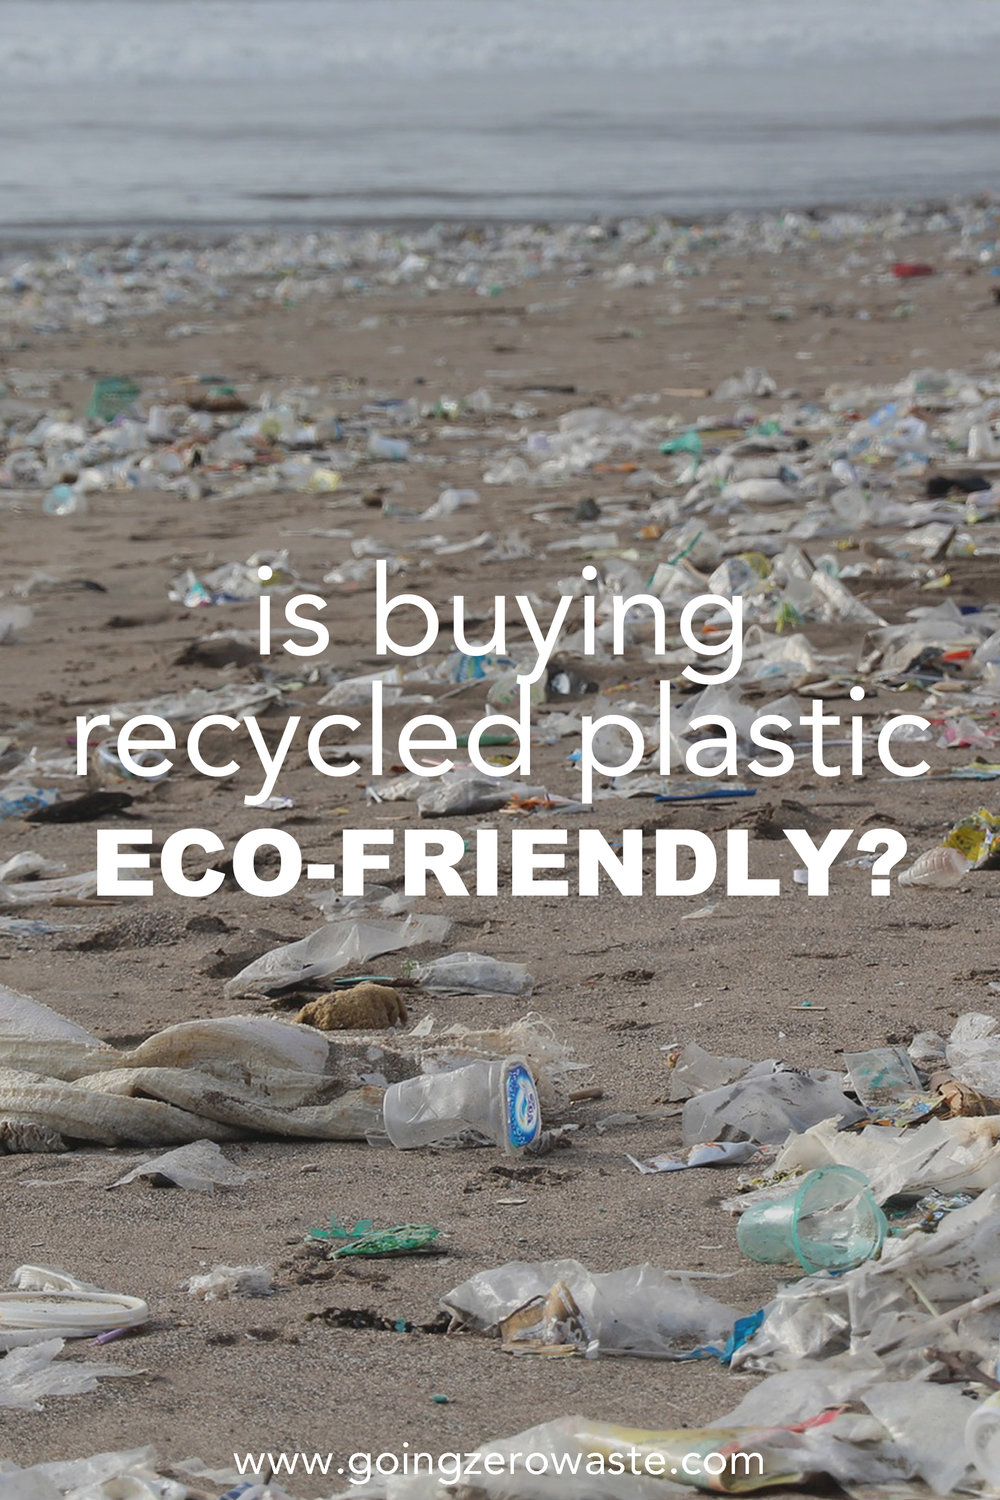 Is buying recycled plastic eco-friendly? from www.goingzerowaste.com